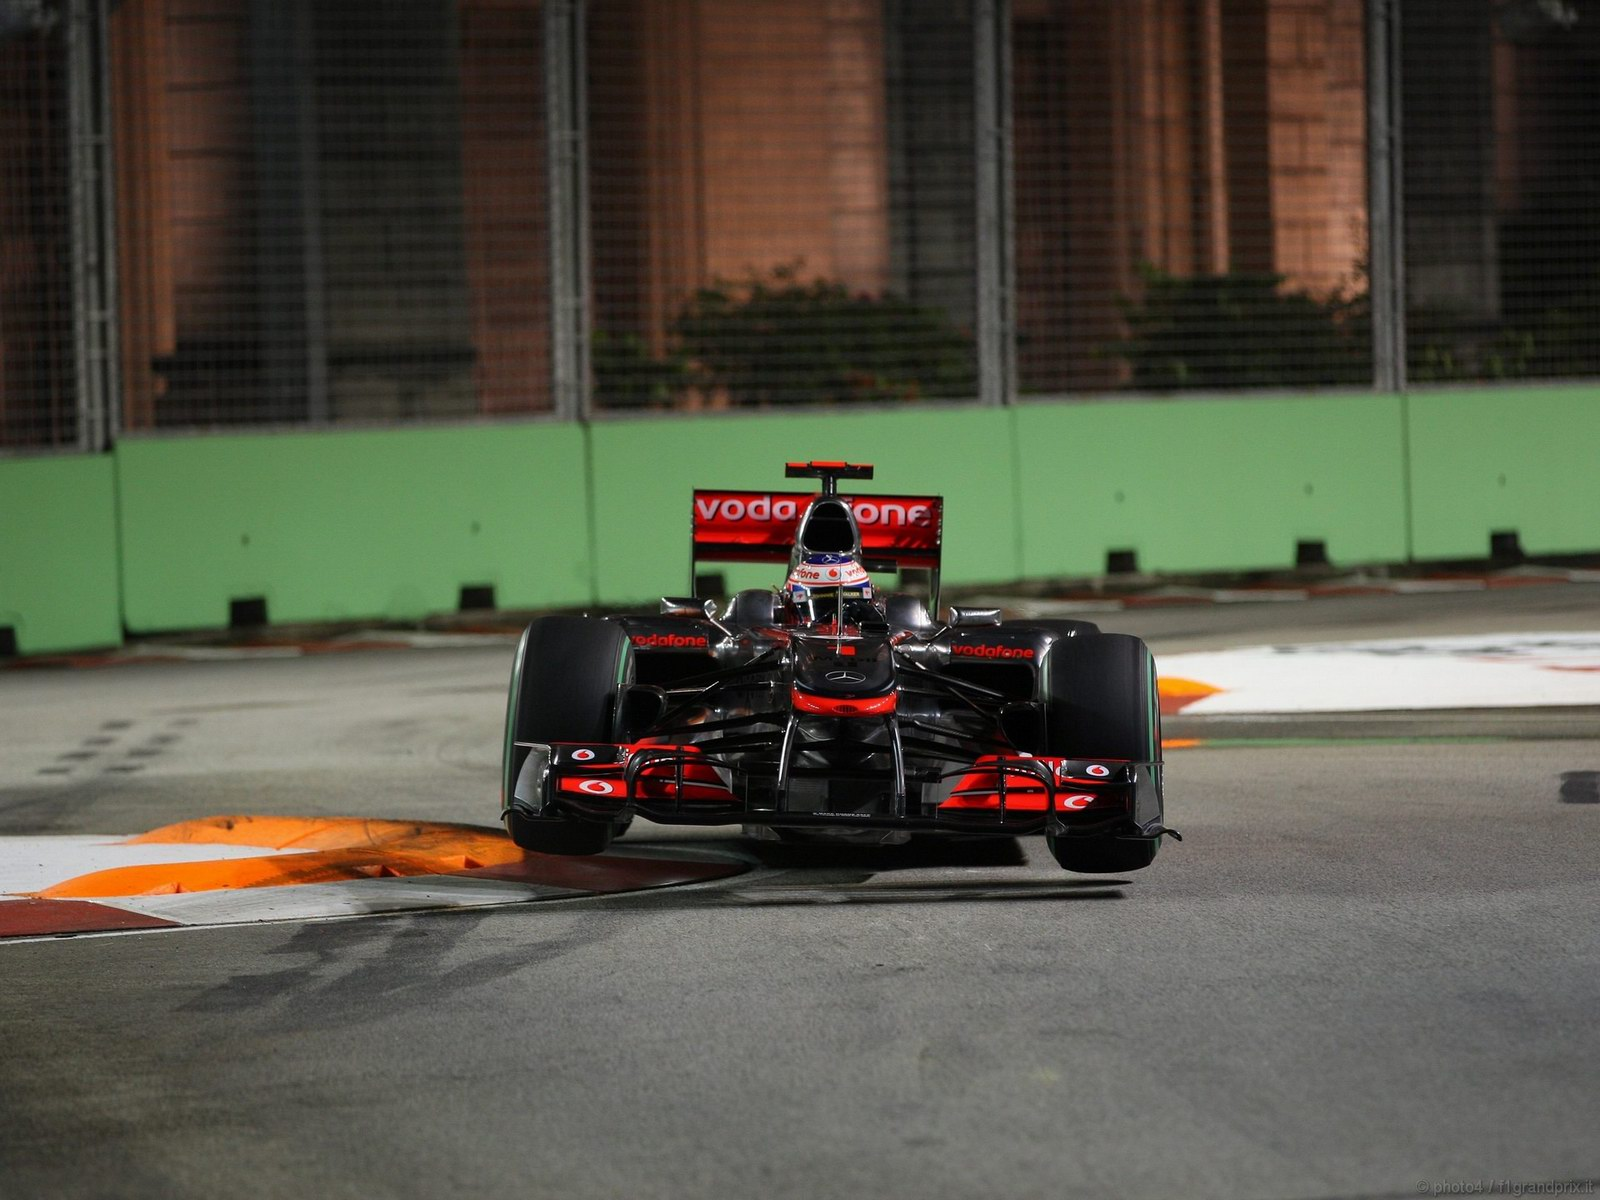 pojazdy - formula1 - gp_singapore_wallpapers_000116